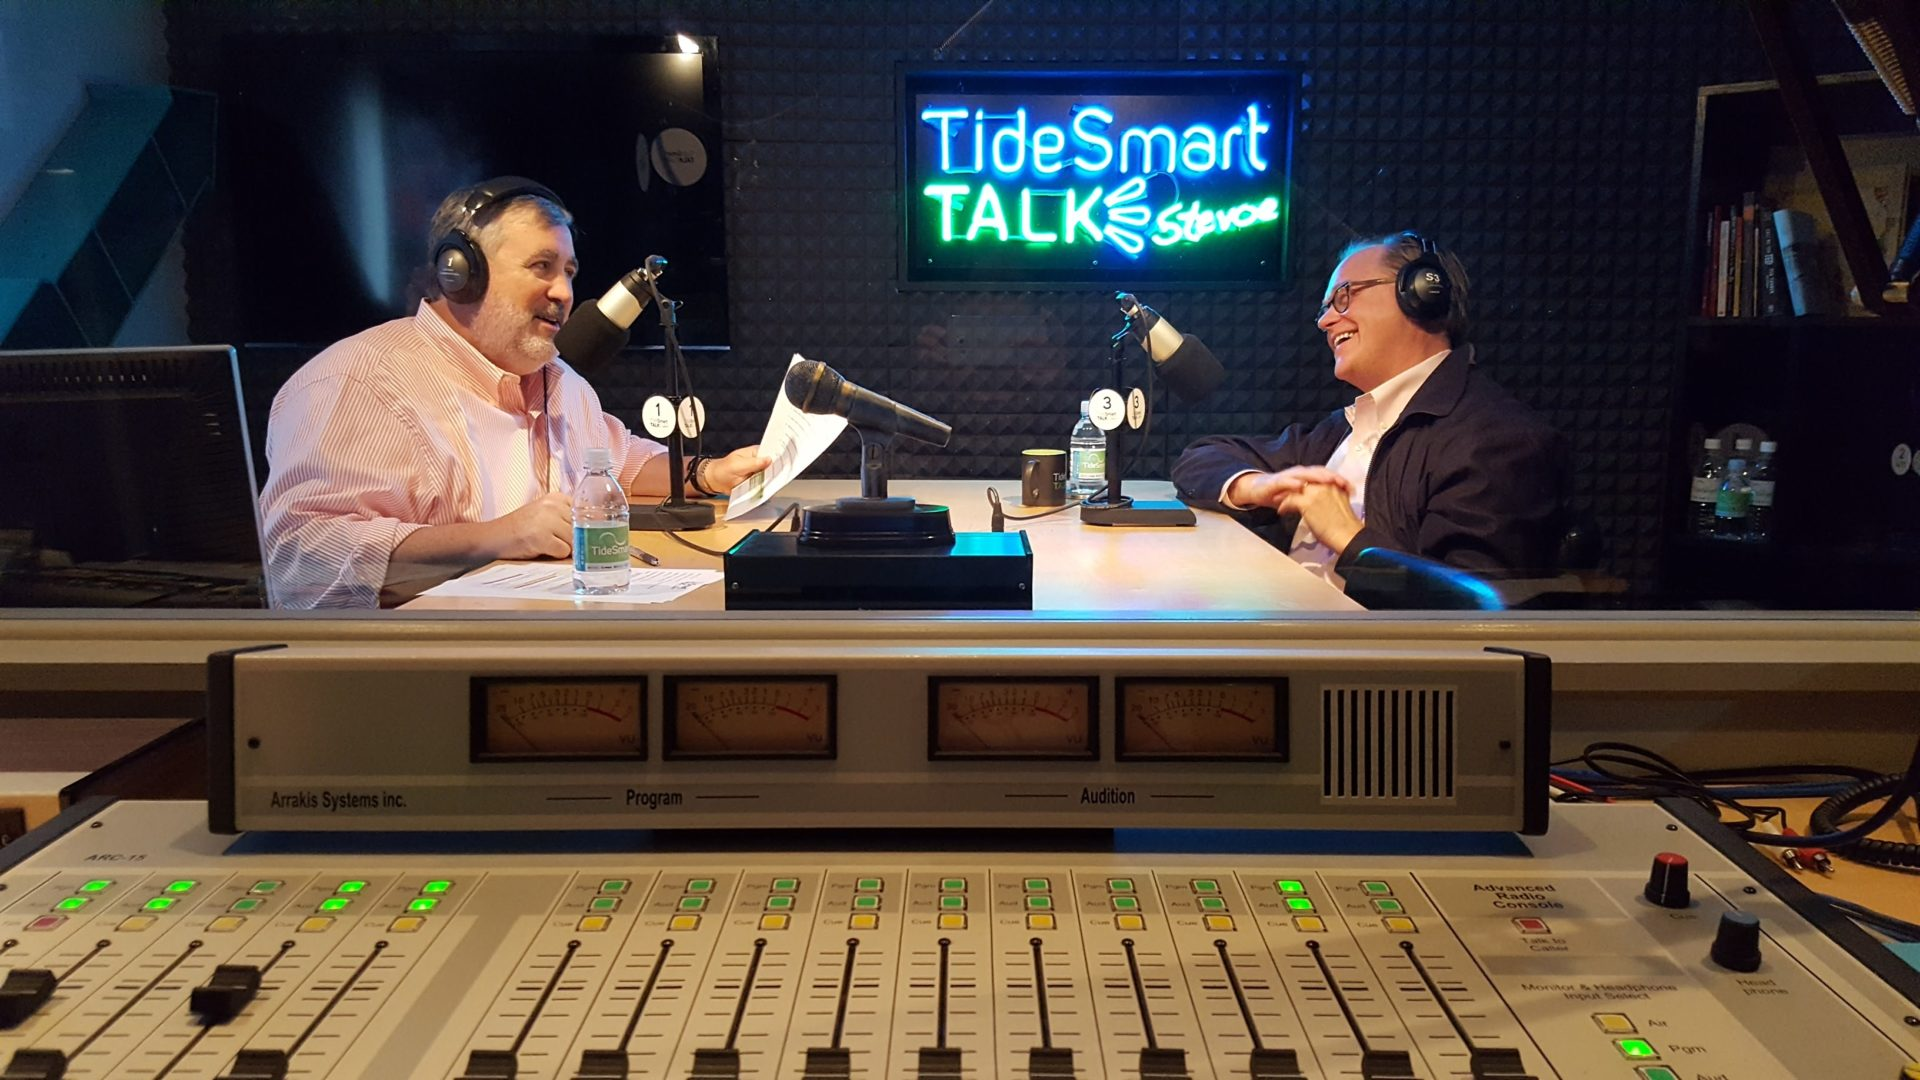 Host of TideSmart Talk with Stevoe, Steve Woods, welcomed Co-Founder of Rancourt & Co. Shoecrafters, Mike Rancourt (at right).